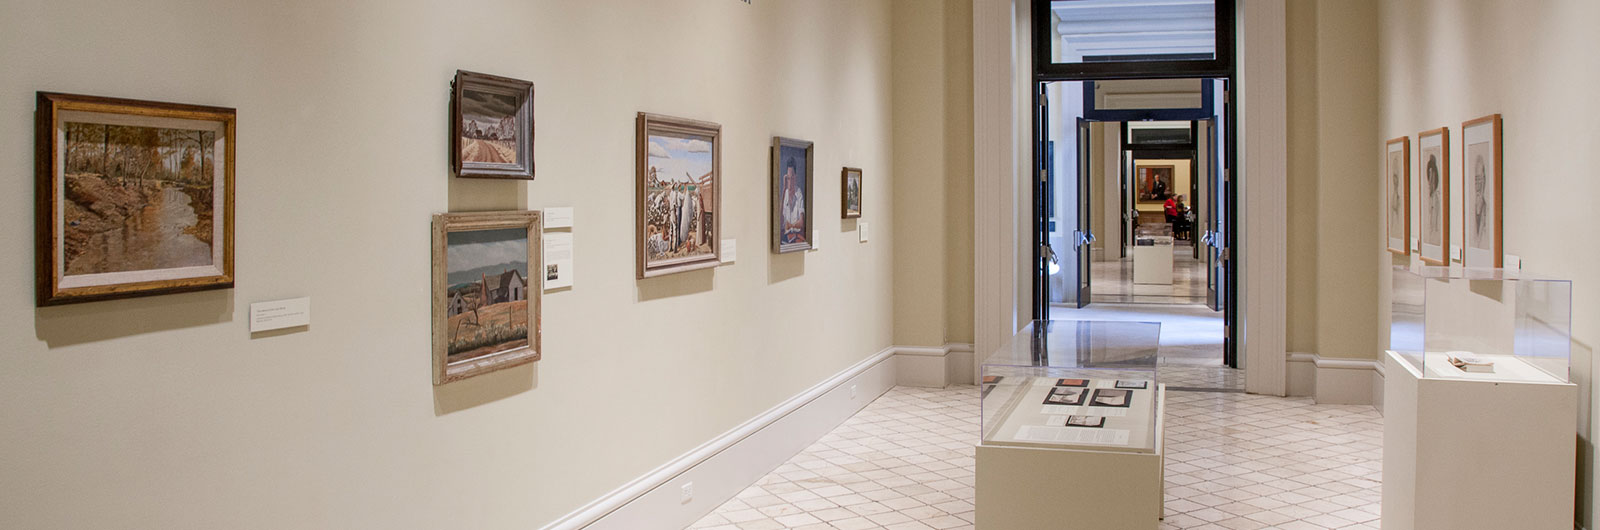 The University Art Collection - Meadows Museum